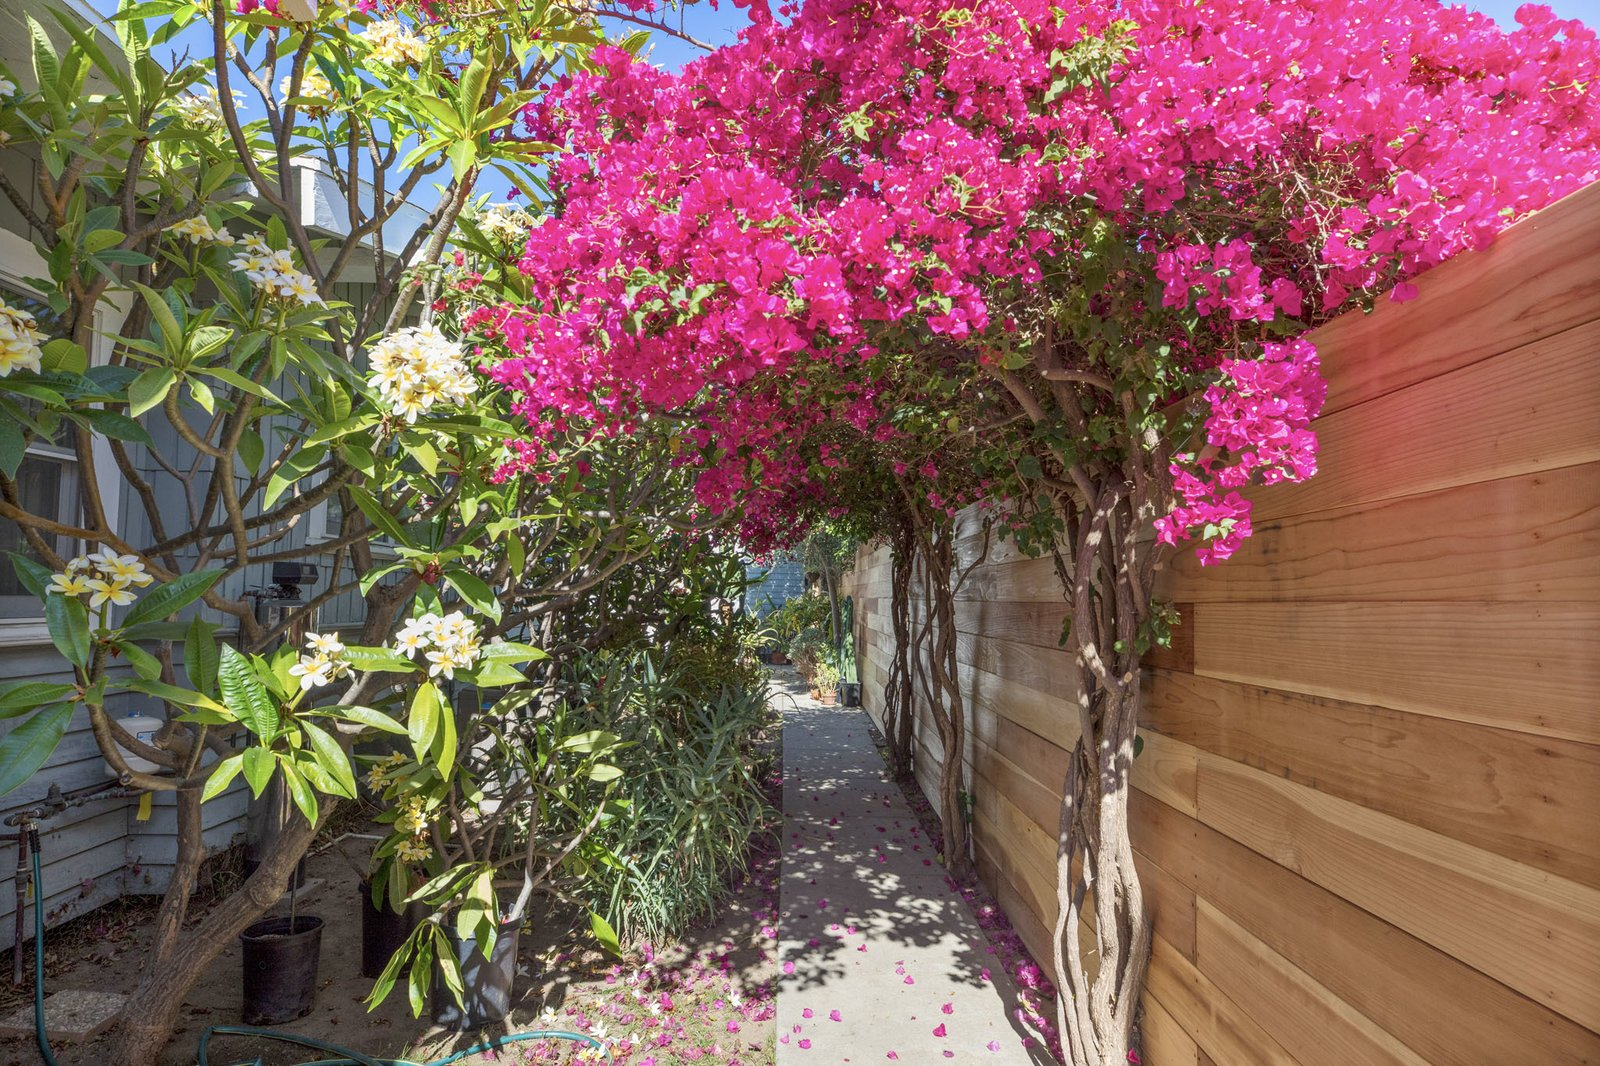 Bougainvillea and plumeria trees overlap to create a natural archway over the side walkway.  Photo 15 of 16 in An Artfully Reimagined California Craftsman Asks $1.2M